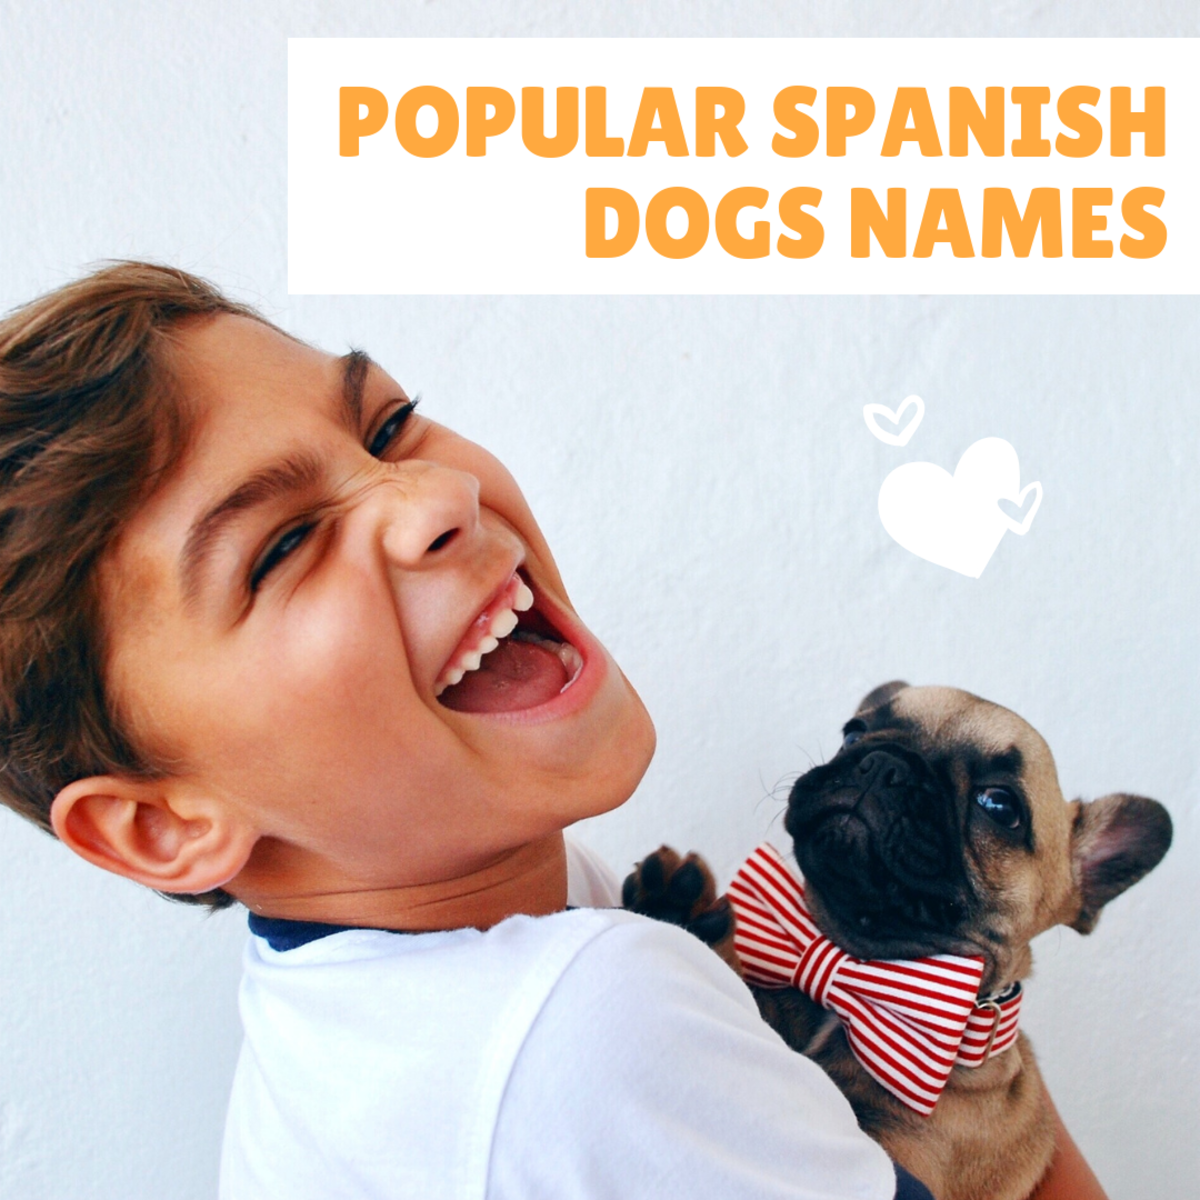 100+ Popular Spanish Dog Names and Their Meanings